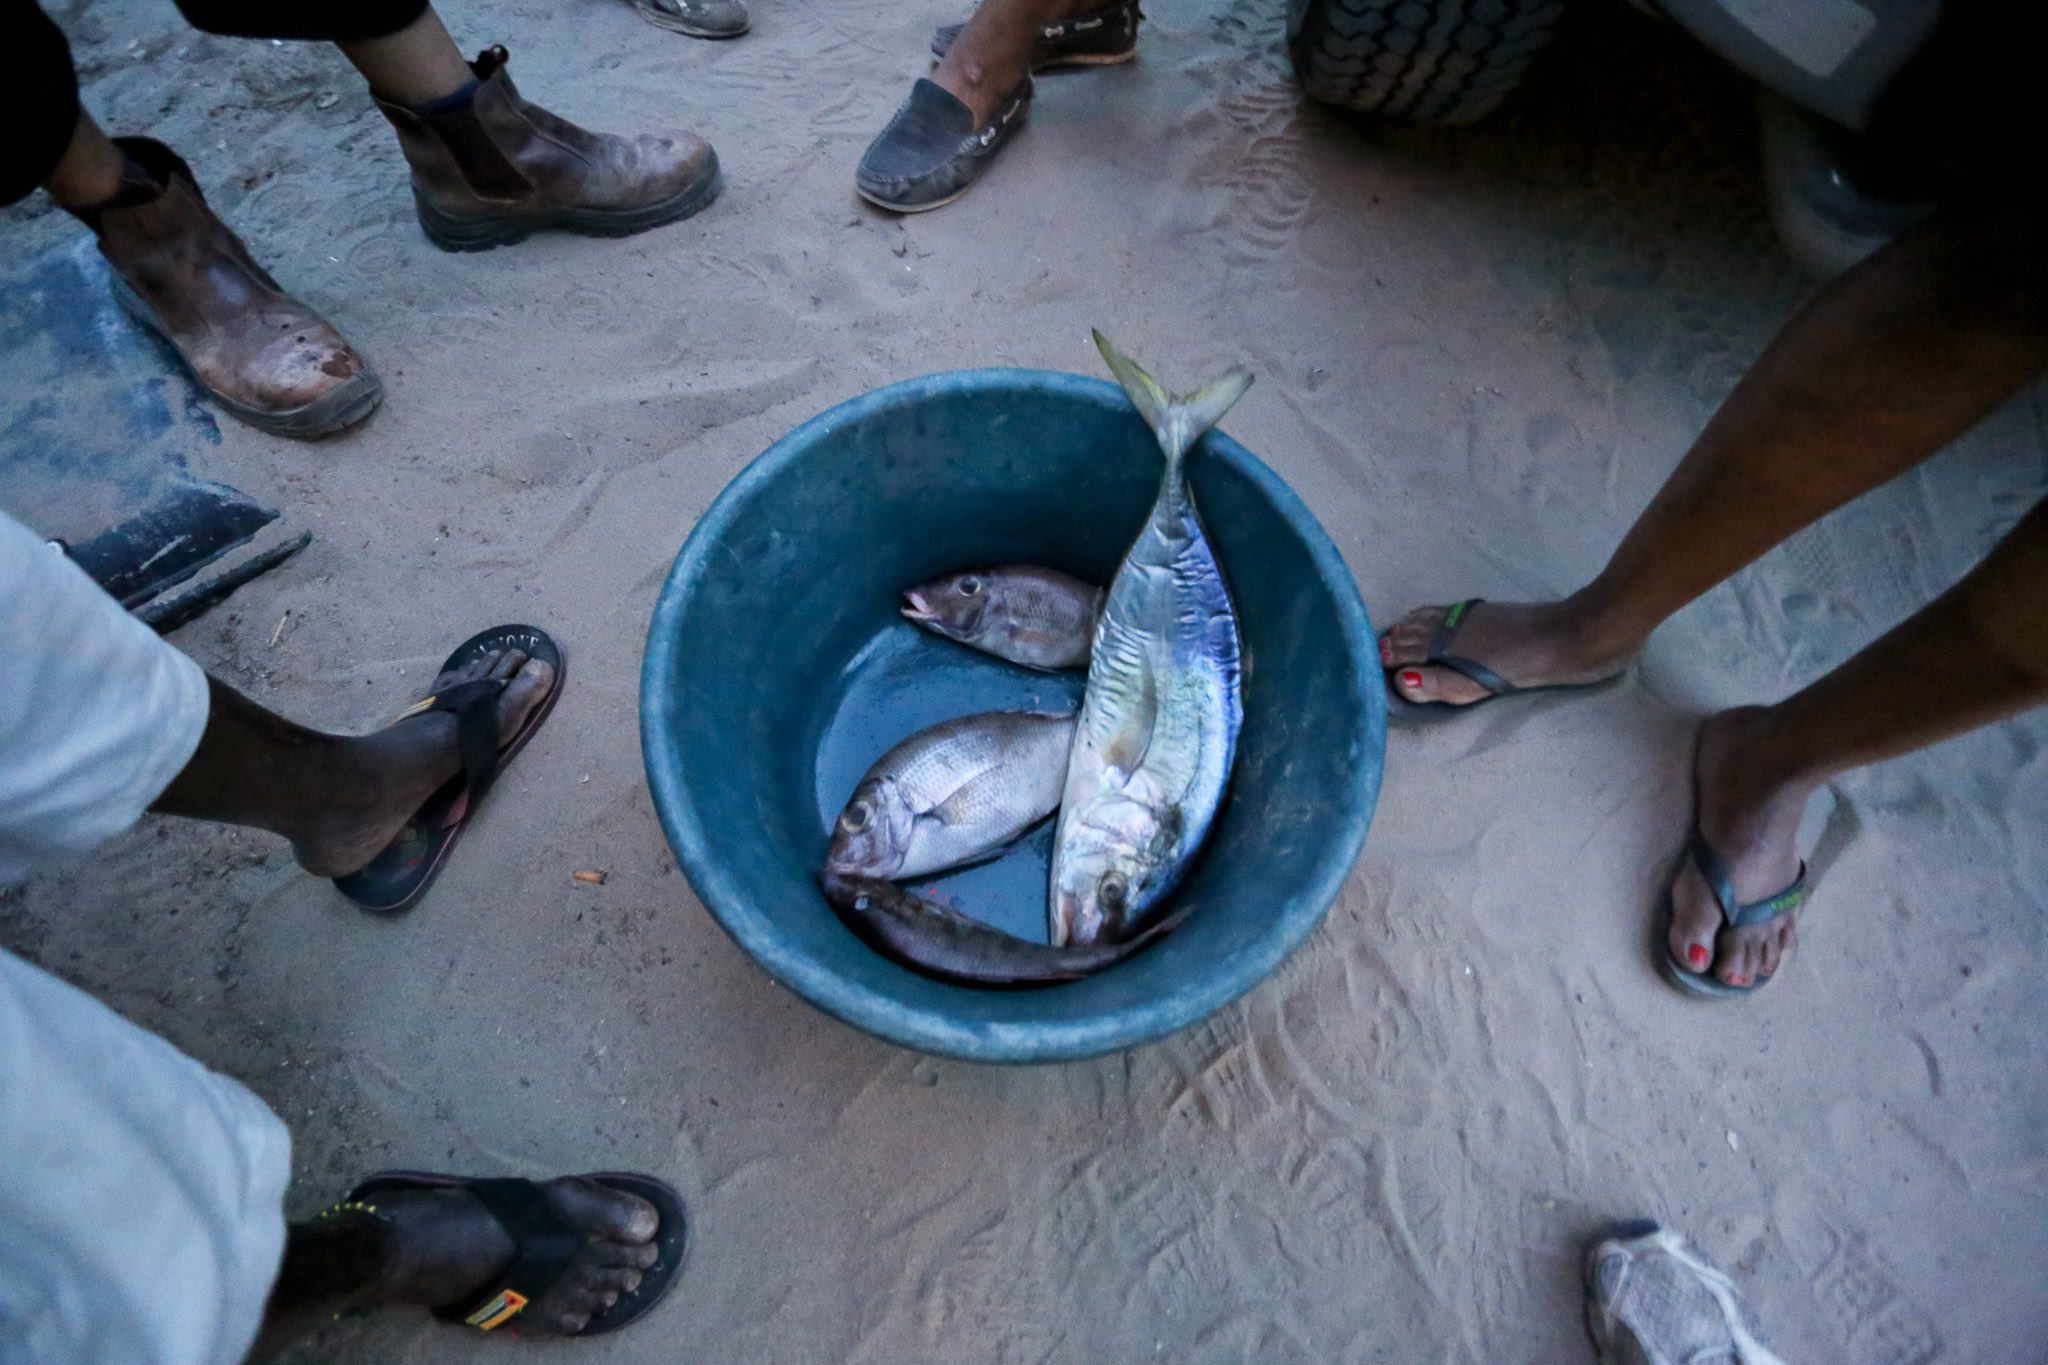 Coral reef fisheries support the livelihoods, food security and cultural practices of 500 million people worldwide. Here, a group of fisheries consider the daily catch in Tofo, Mozambique. Photo: Emily Darling